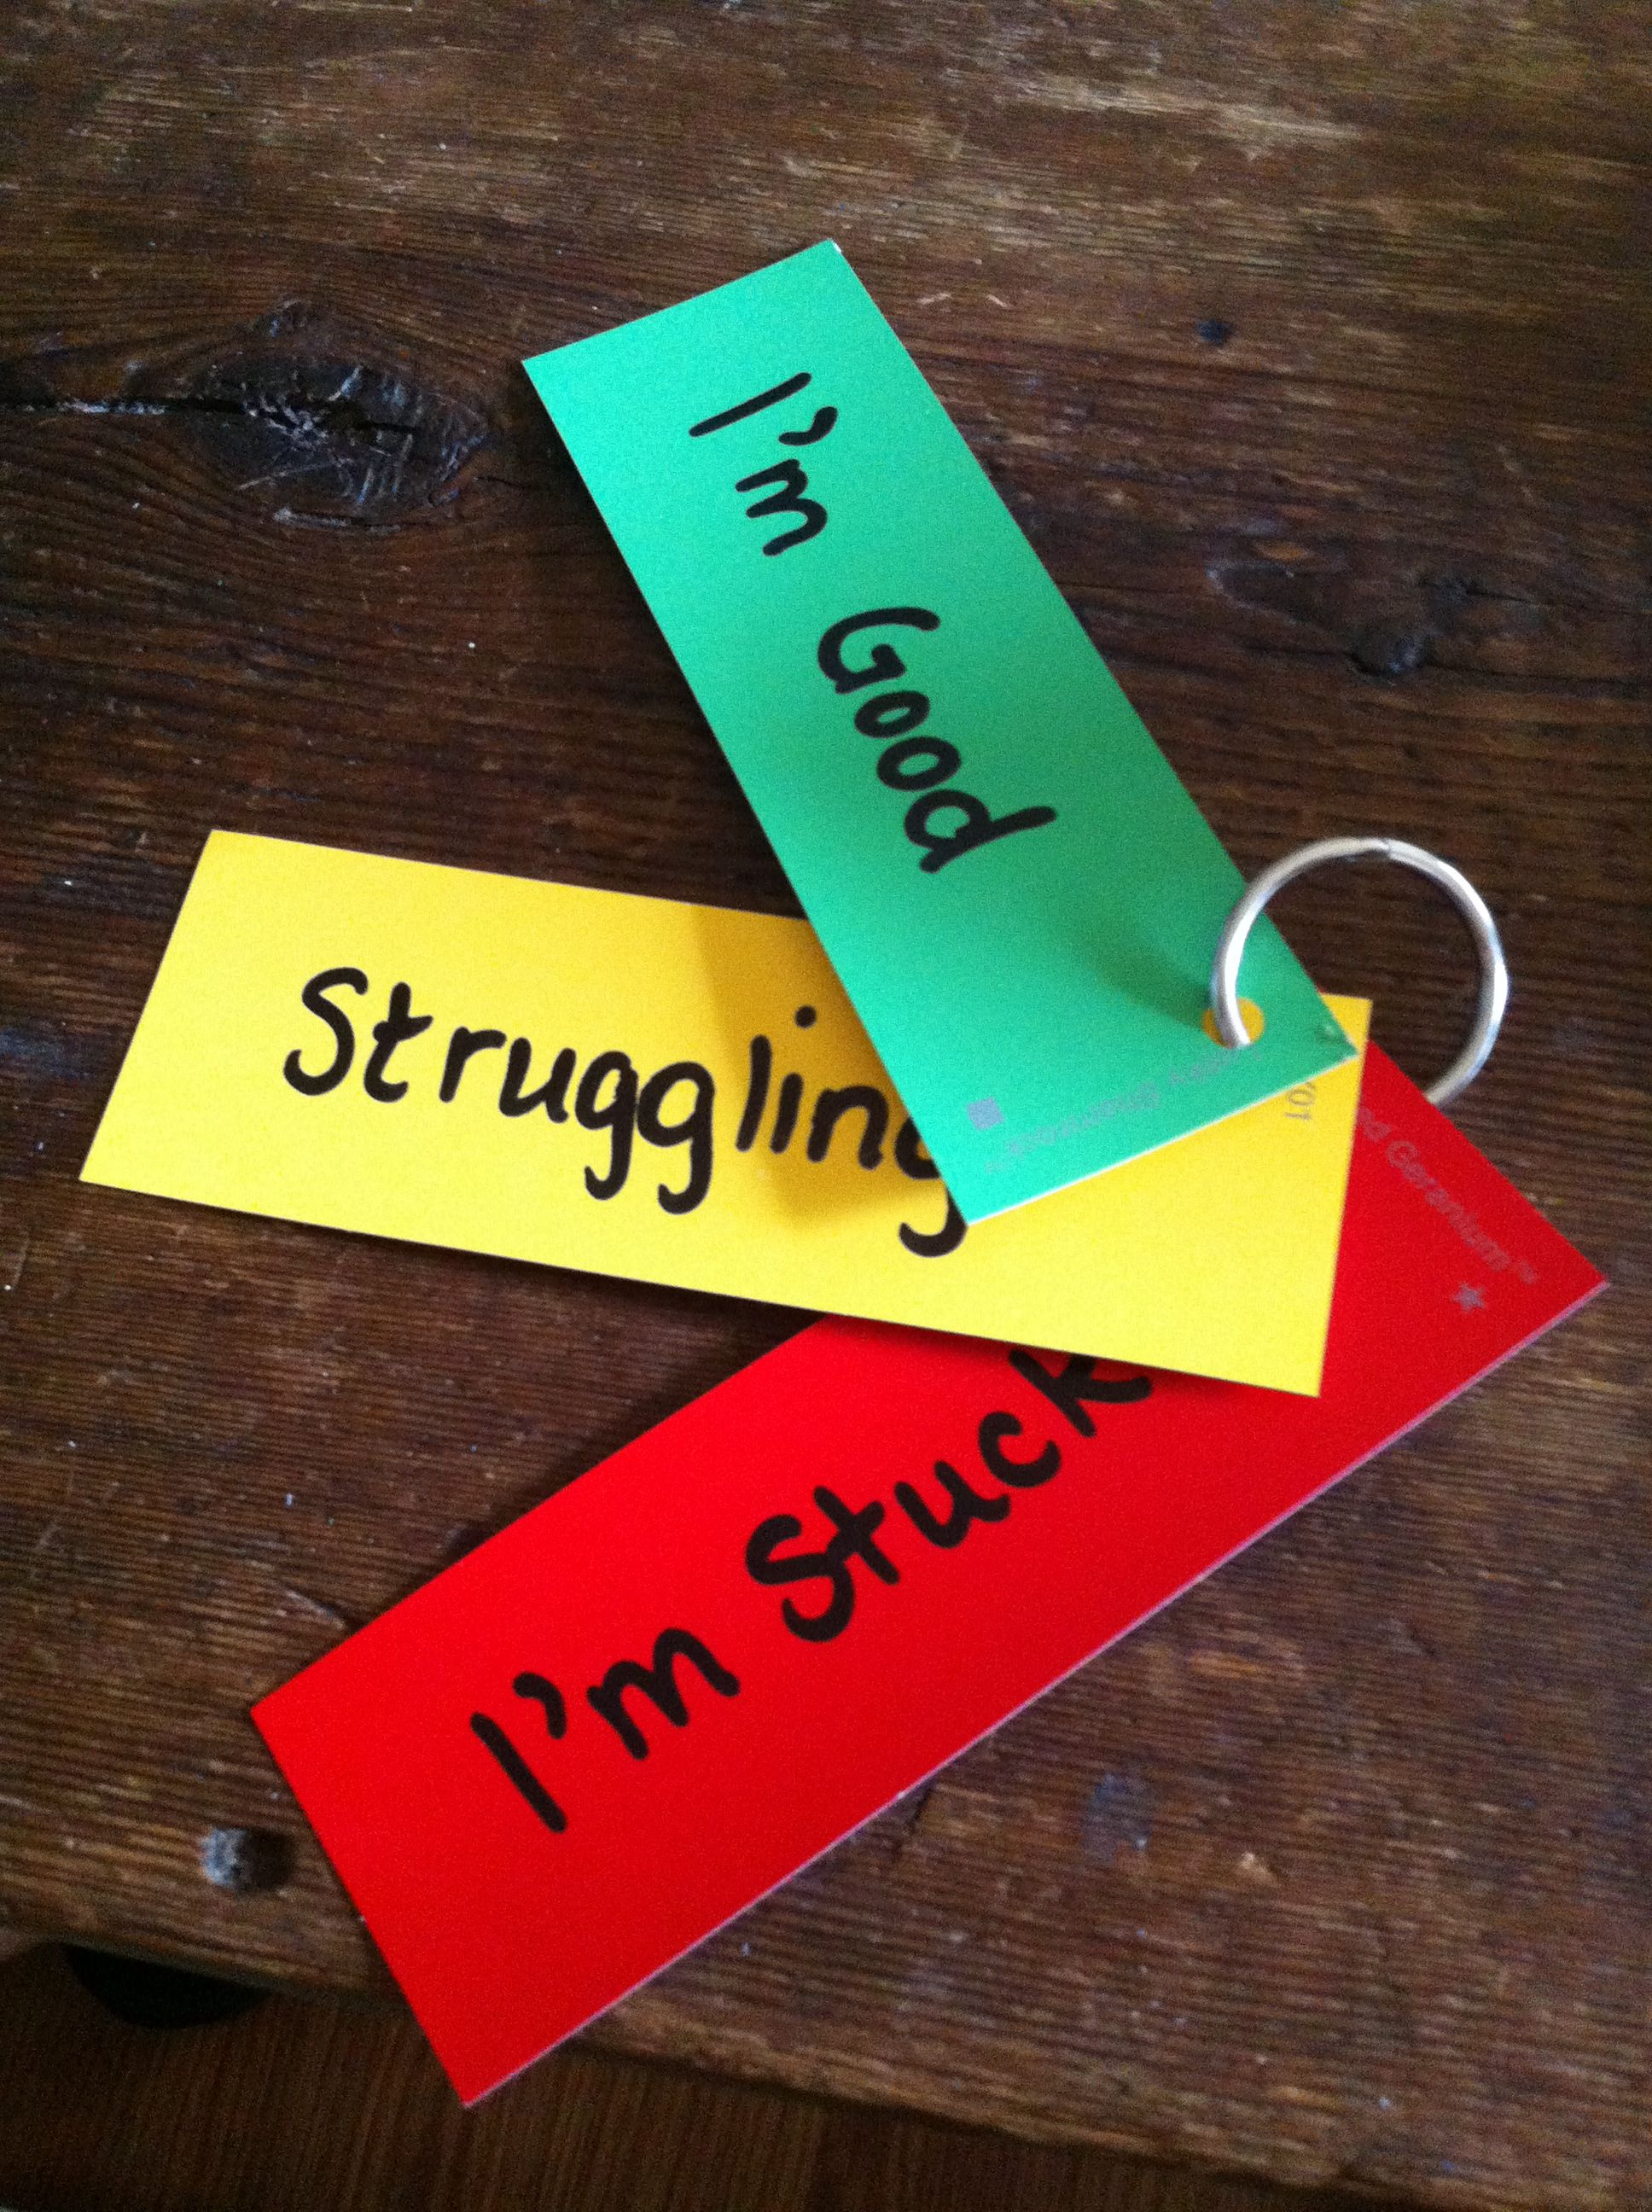 Student selfassessment rings I used binder rings and